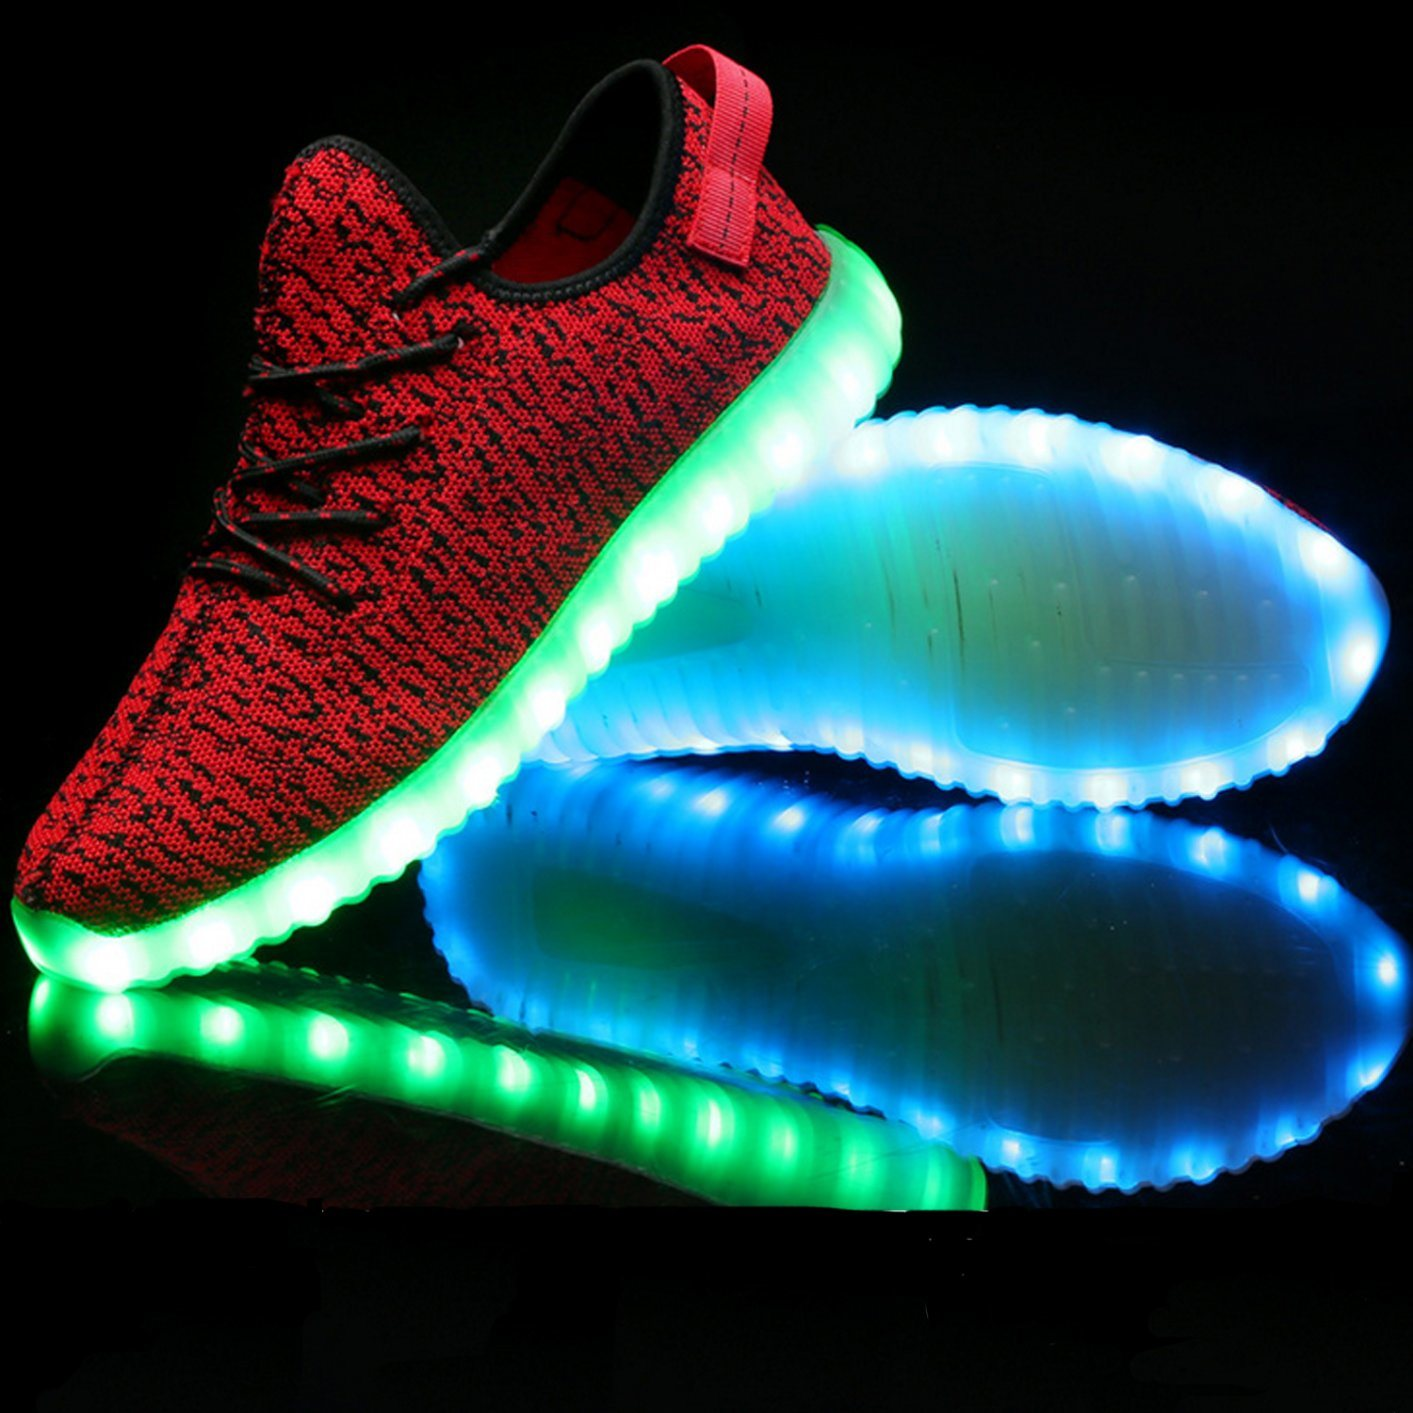 The Newest LED Flashing Shoe Light up Dance Shoes for Party